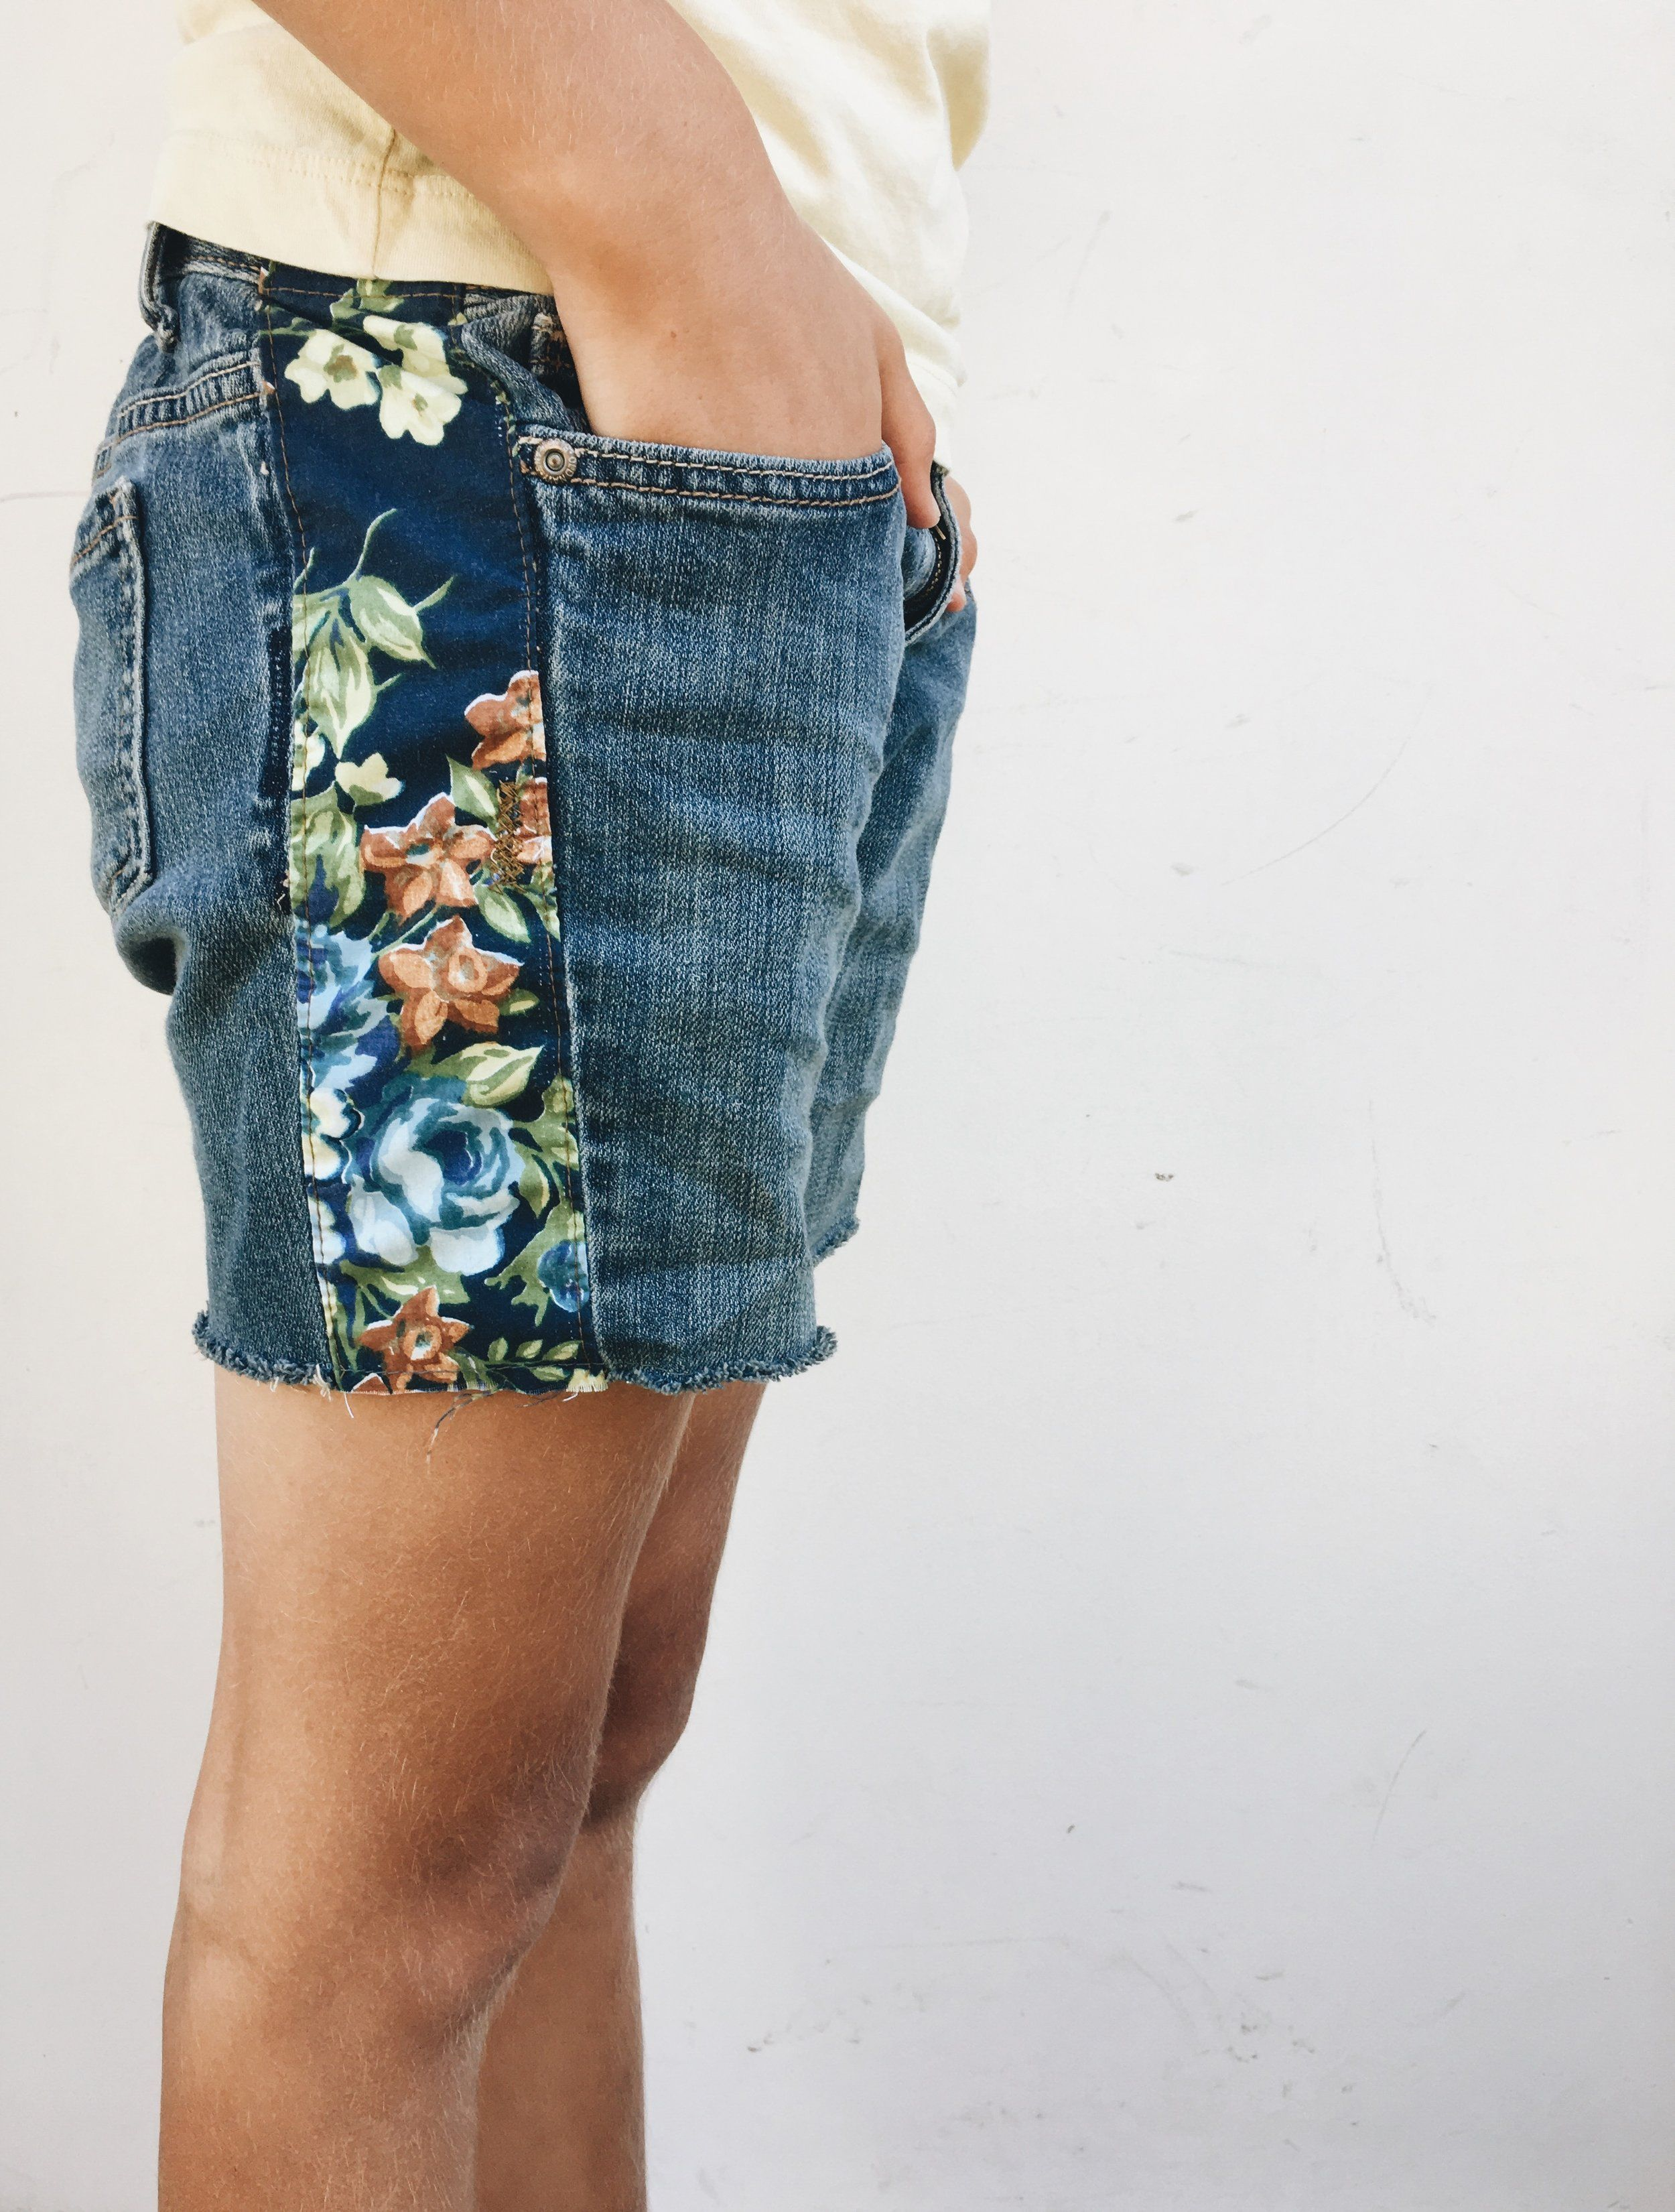 382ddec6fe141 How to Make Boho Inspired Jean Cutoff Shorts | Fashion & Beauty ...